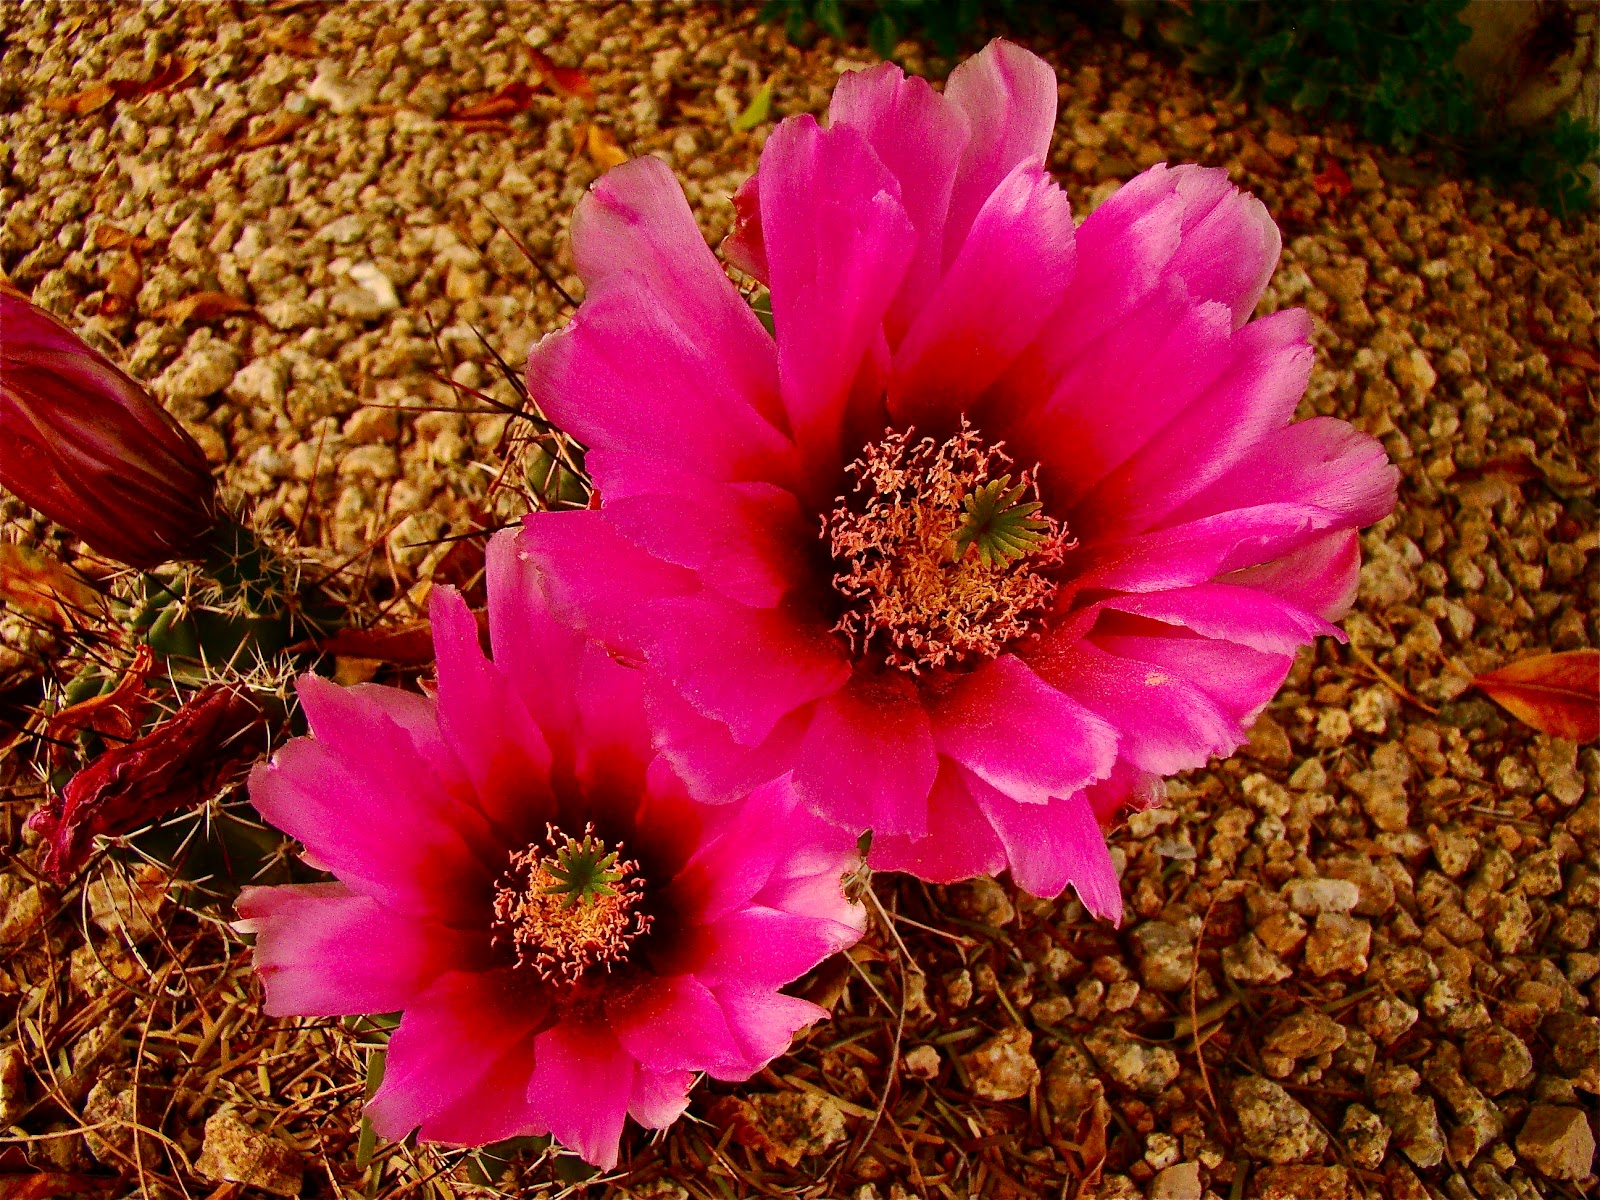 Scottsdale Daily Birthday Bouquet of Cactus Flowers